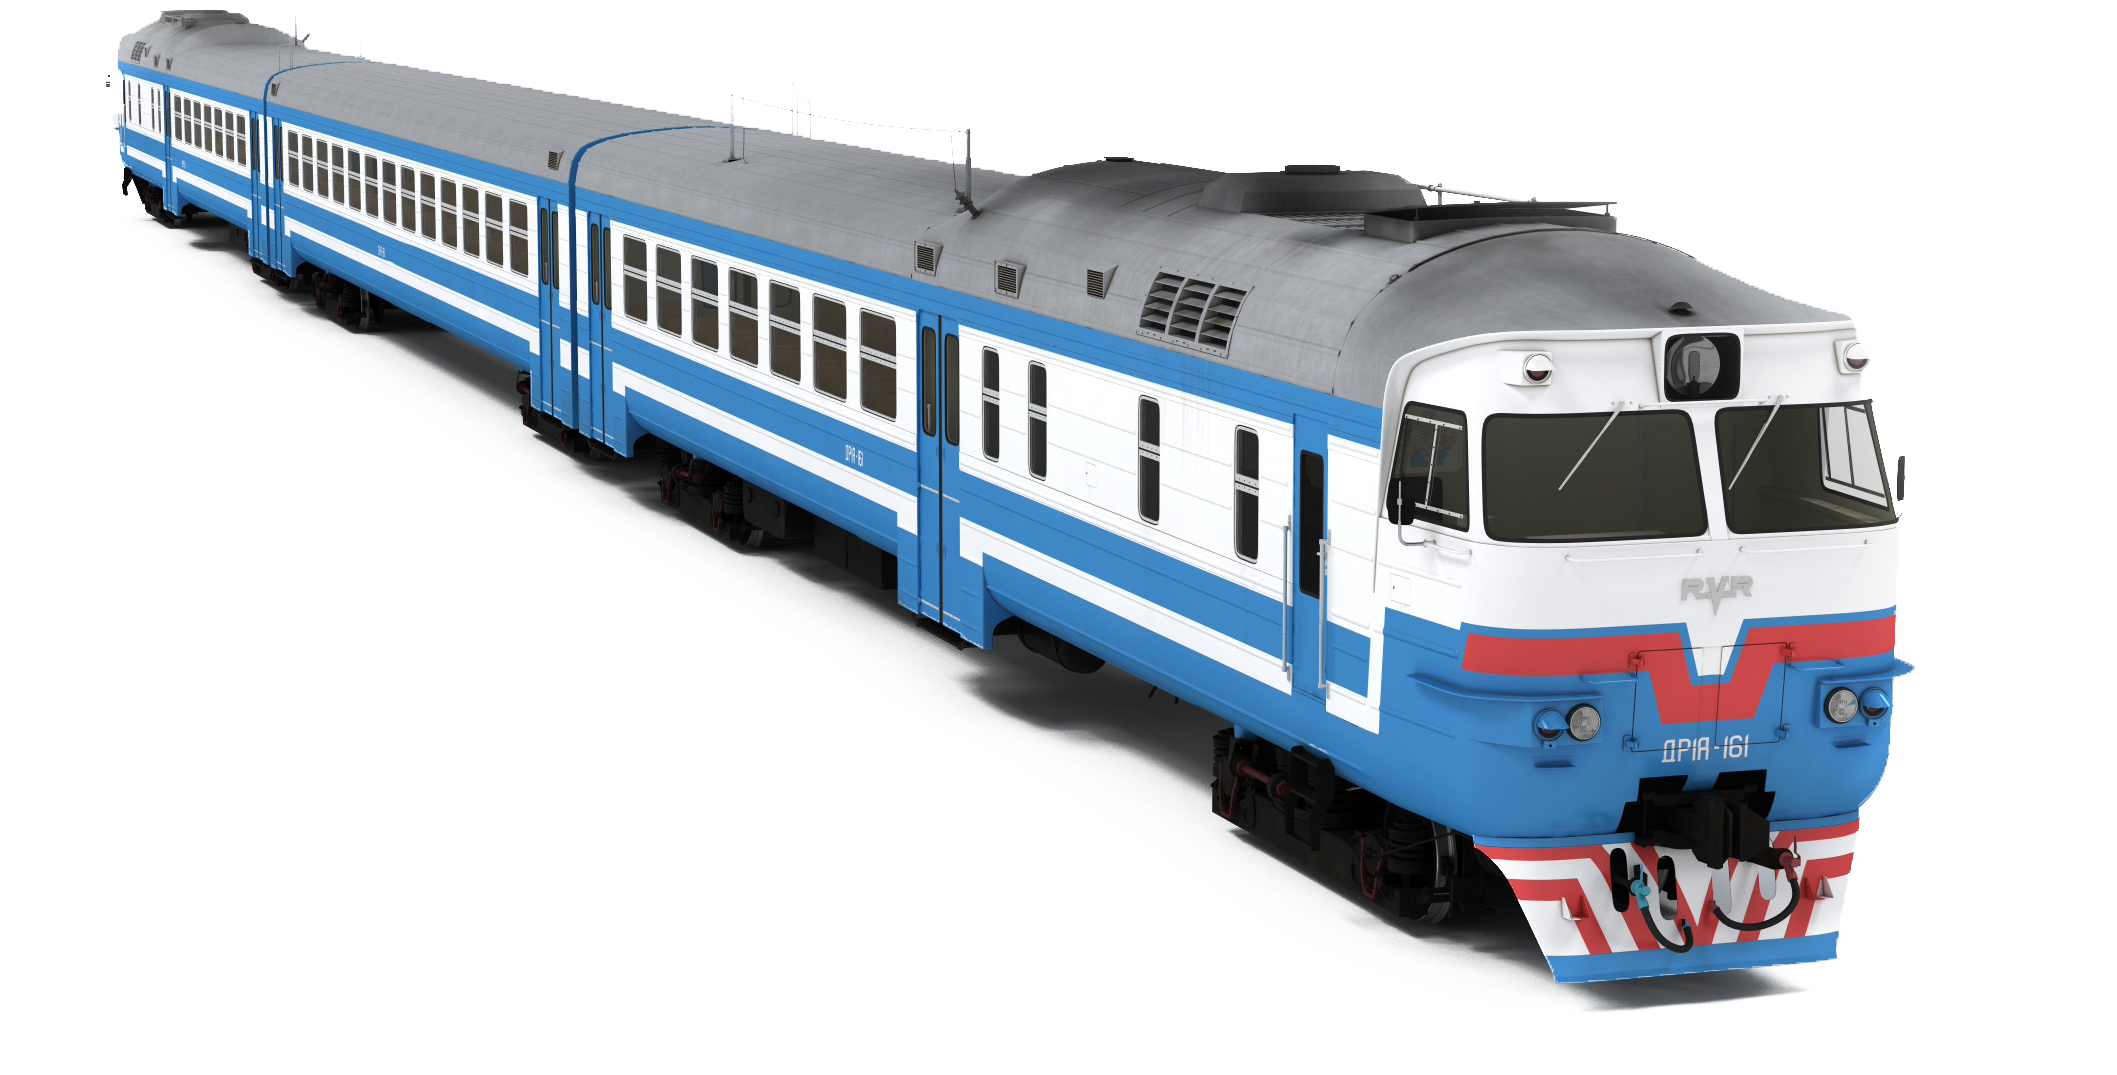 Pictures of passenger trains clipart images gallery for free.